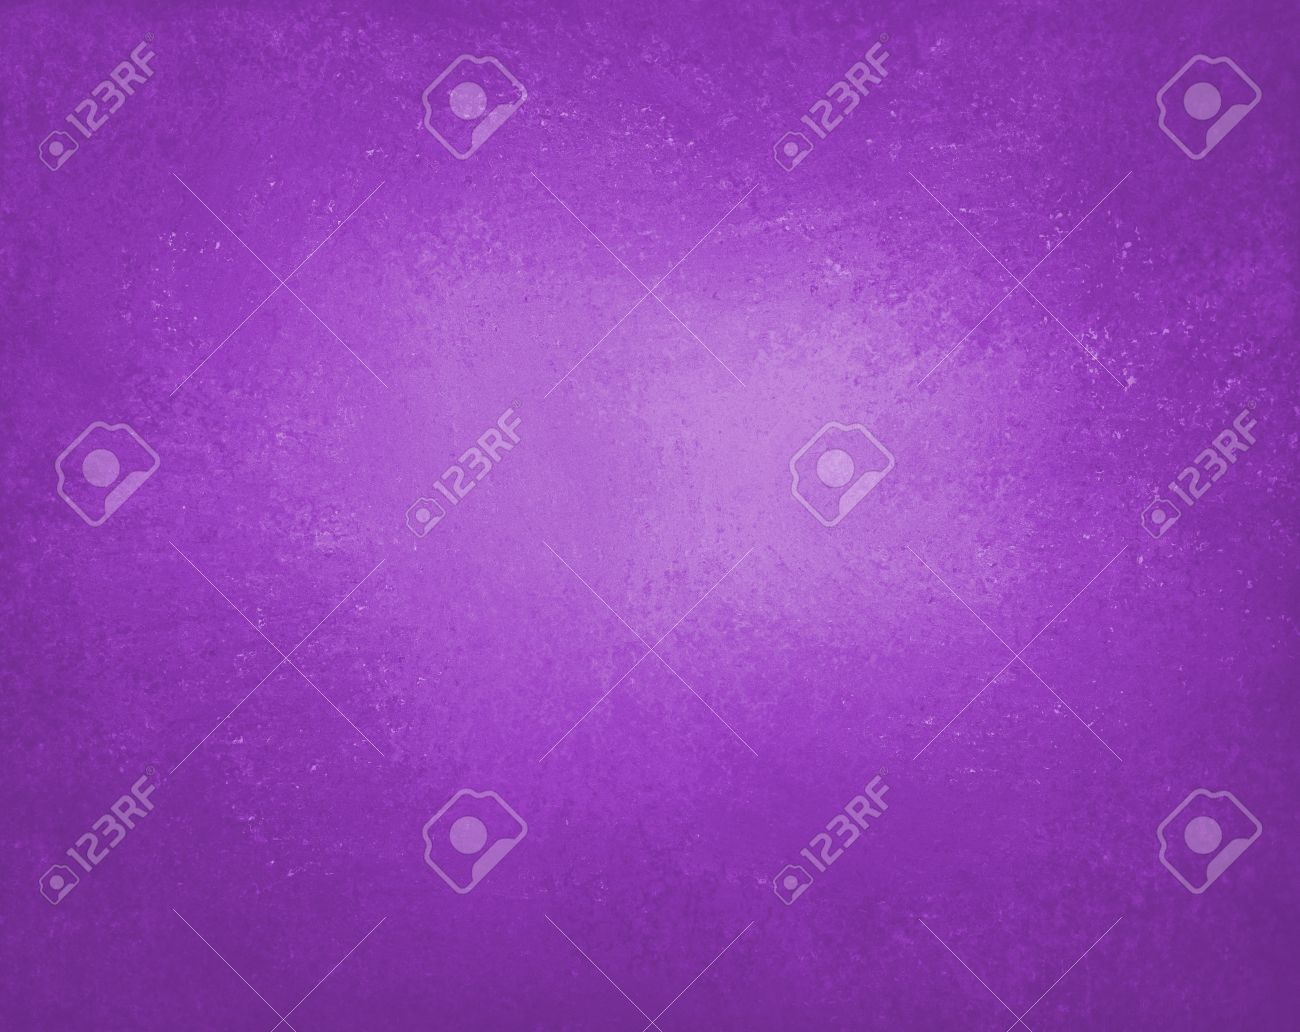 Cool colors web design - Stock Photo Vibrant Purple Background Spring Easter Color Design Vintage Grunge Texture Web Template Background Layout Idea Elegant Printed Material